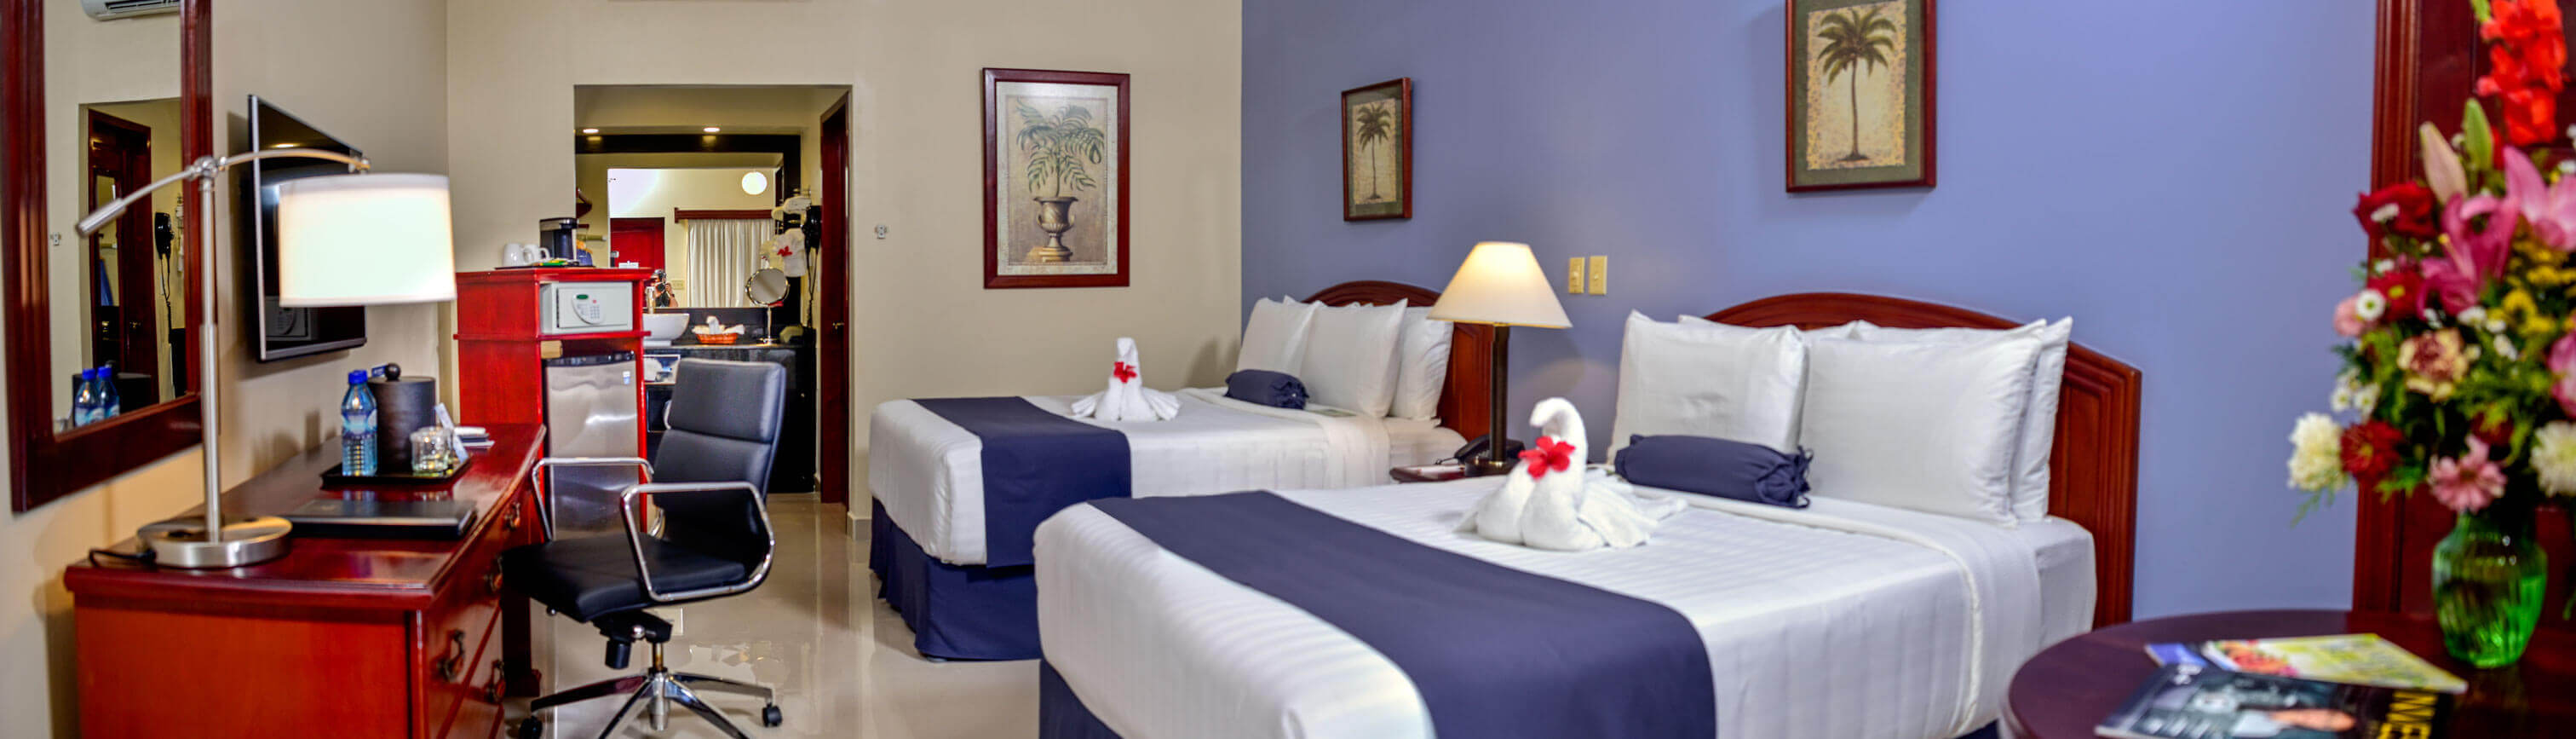 Welcome To Best Western Plus Belize Biltmore Plaza